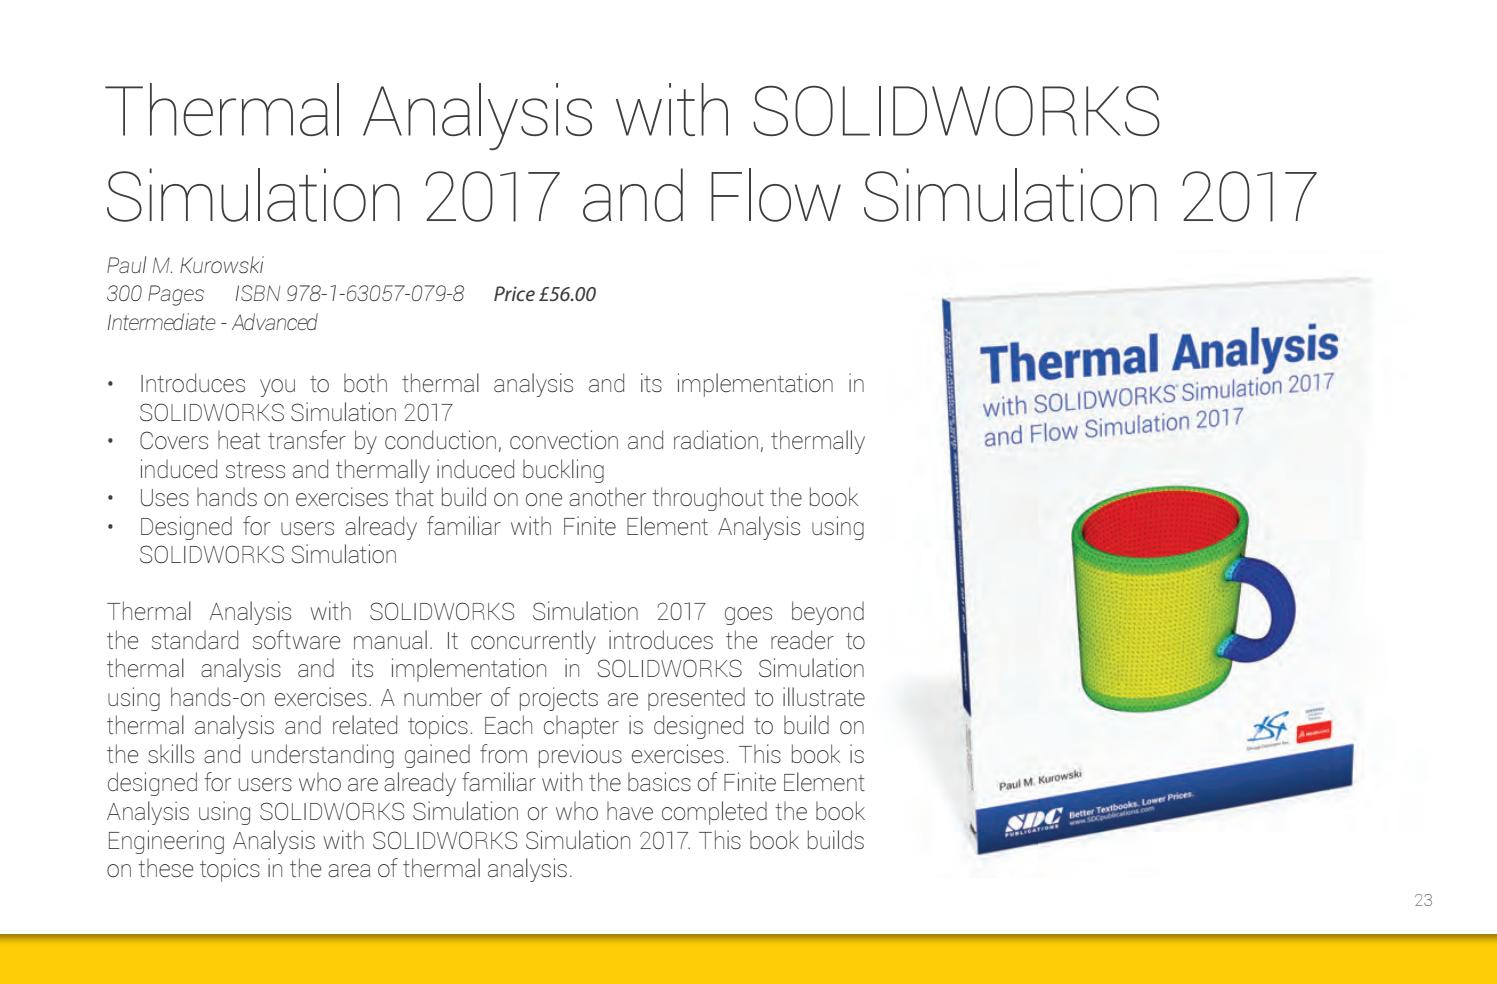 Sdc solidworks 2017 by scientific books information issuu baditri Images